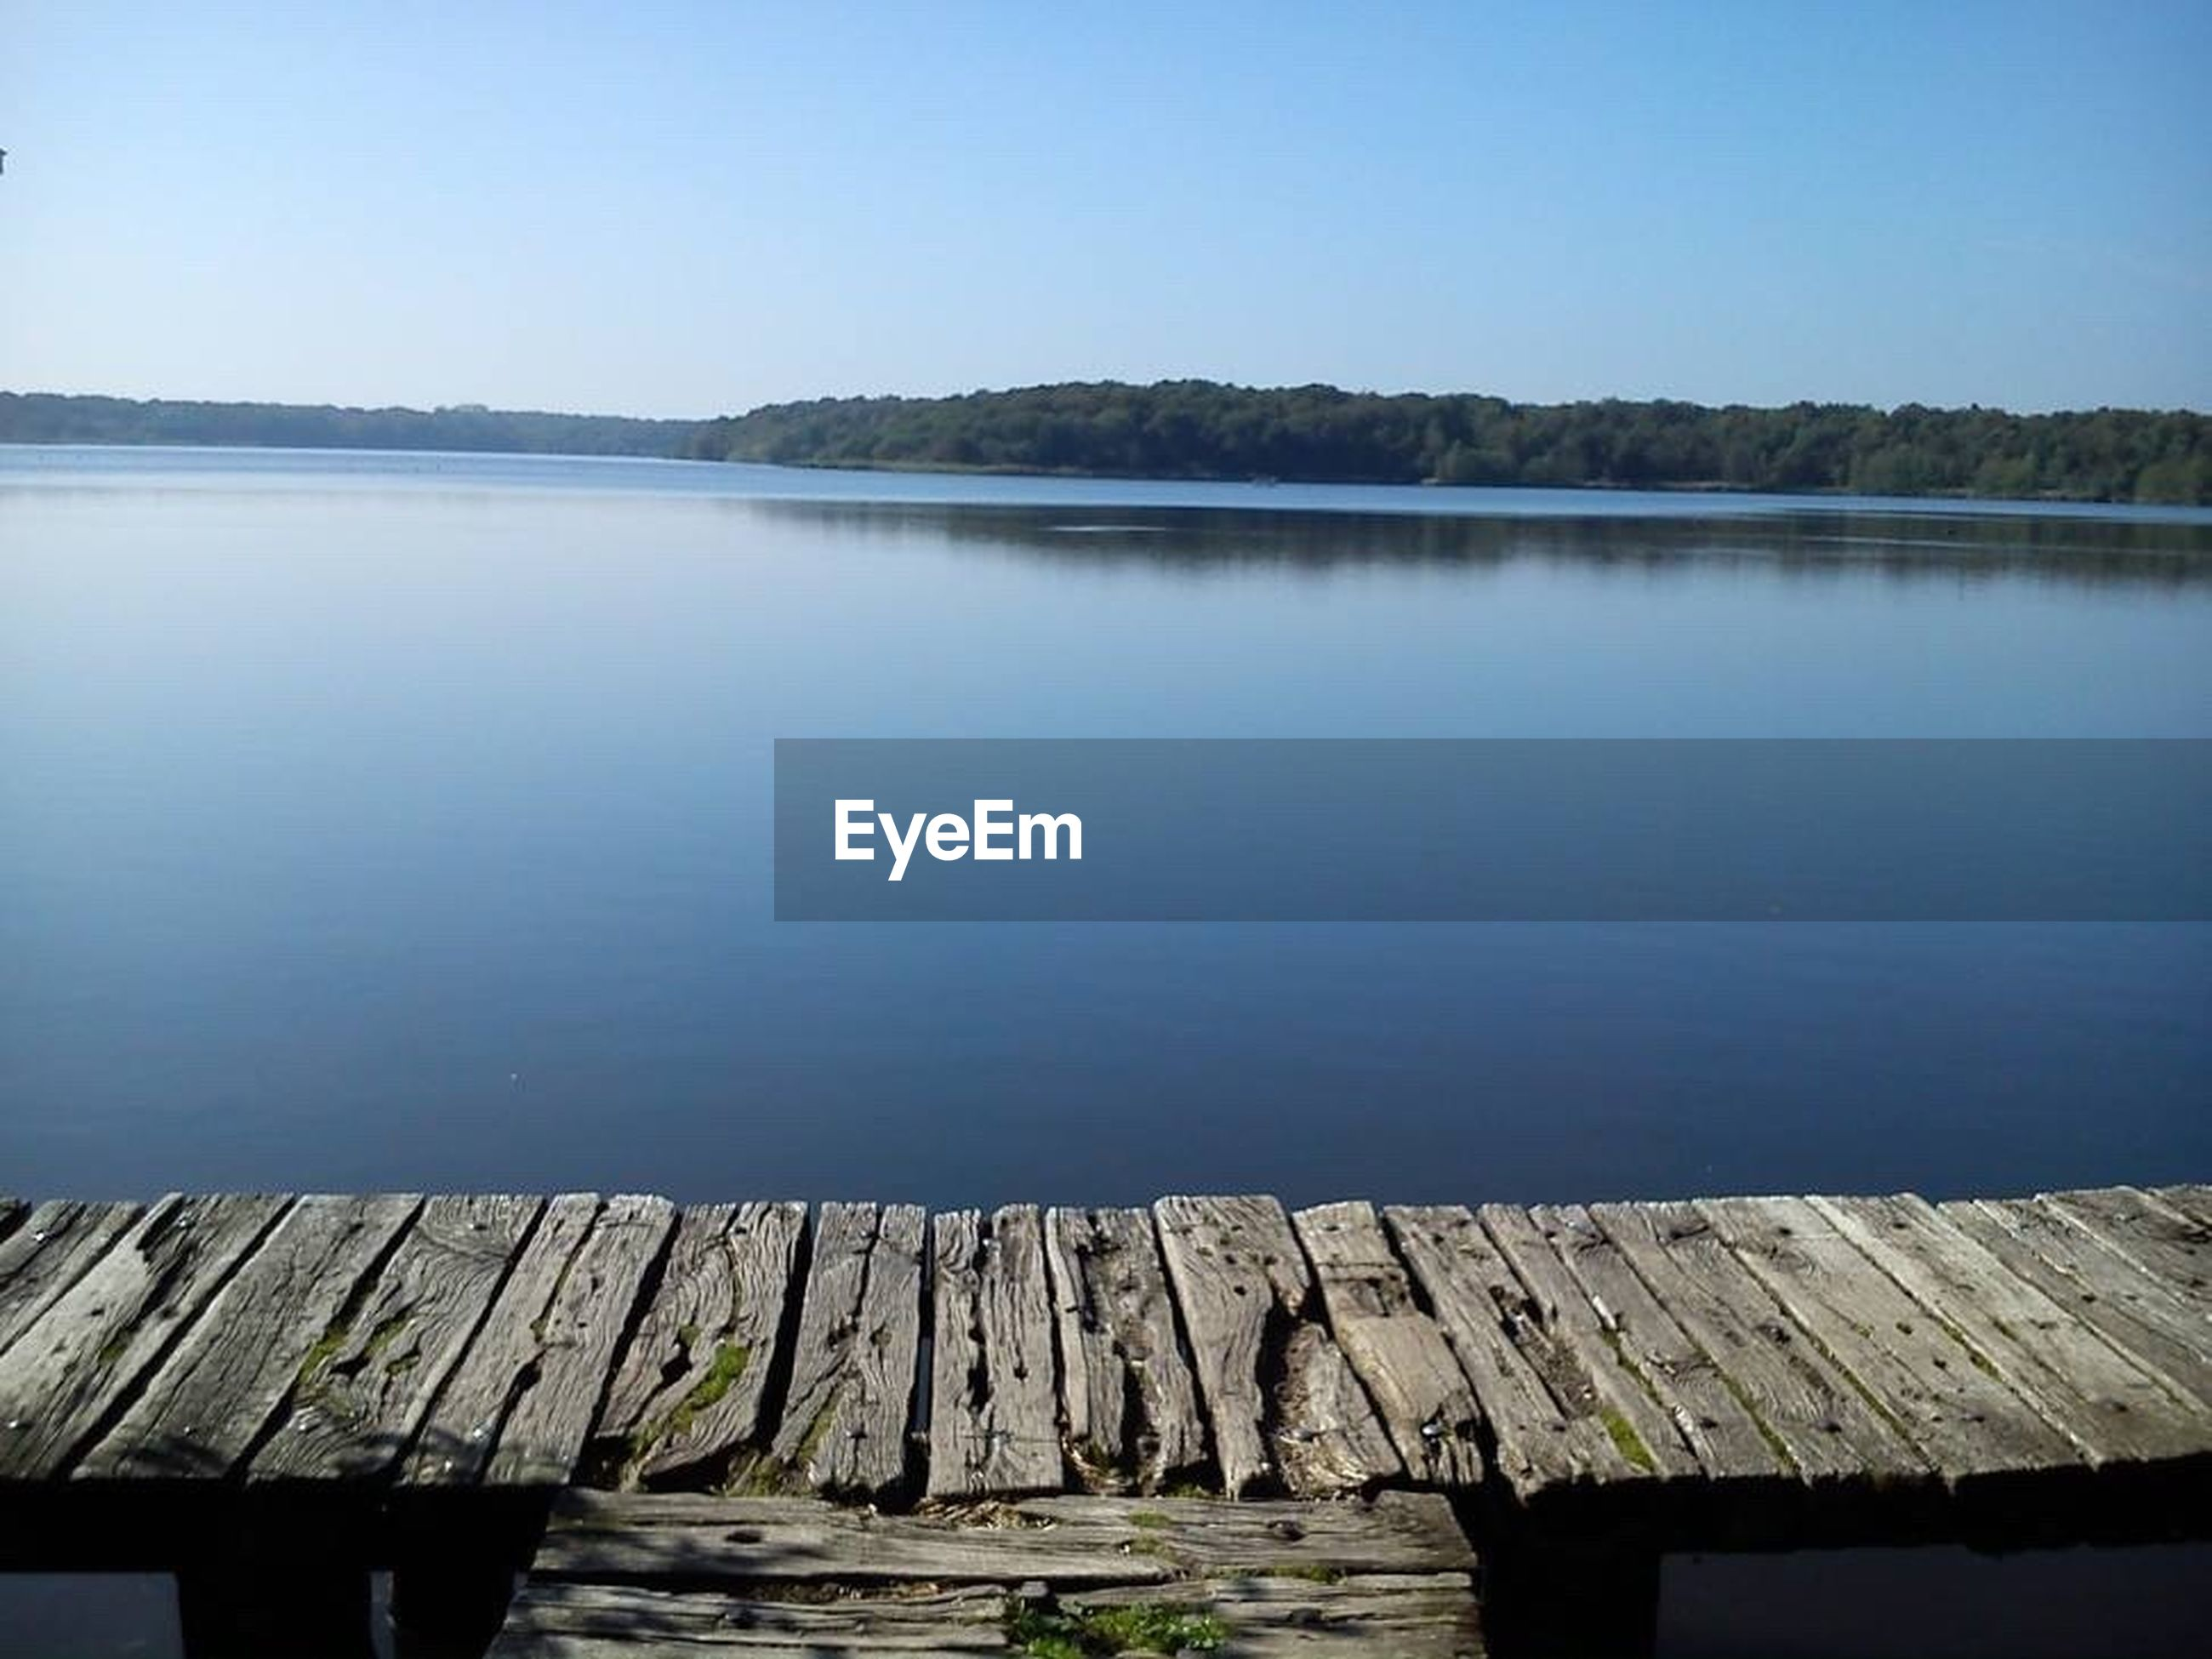 water, tranquil scene, tranquility, lake, clear sky, scenics, wood - material, blue, beauty in nature, nature, pier, copy space, idyllic, jetty, wood, calm, wooden, day, rippled, reflection